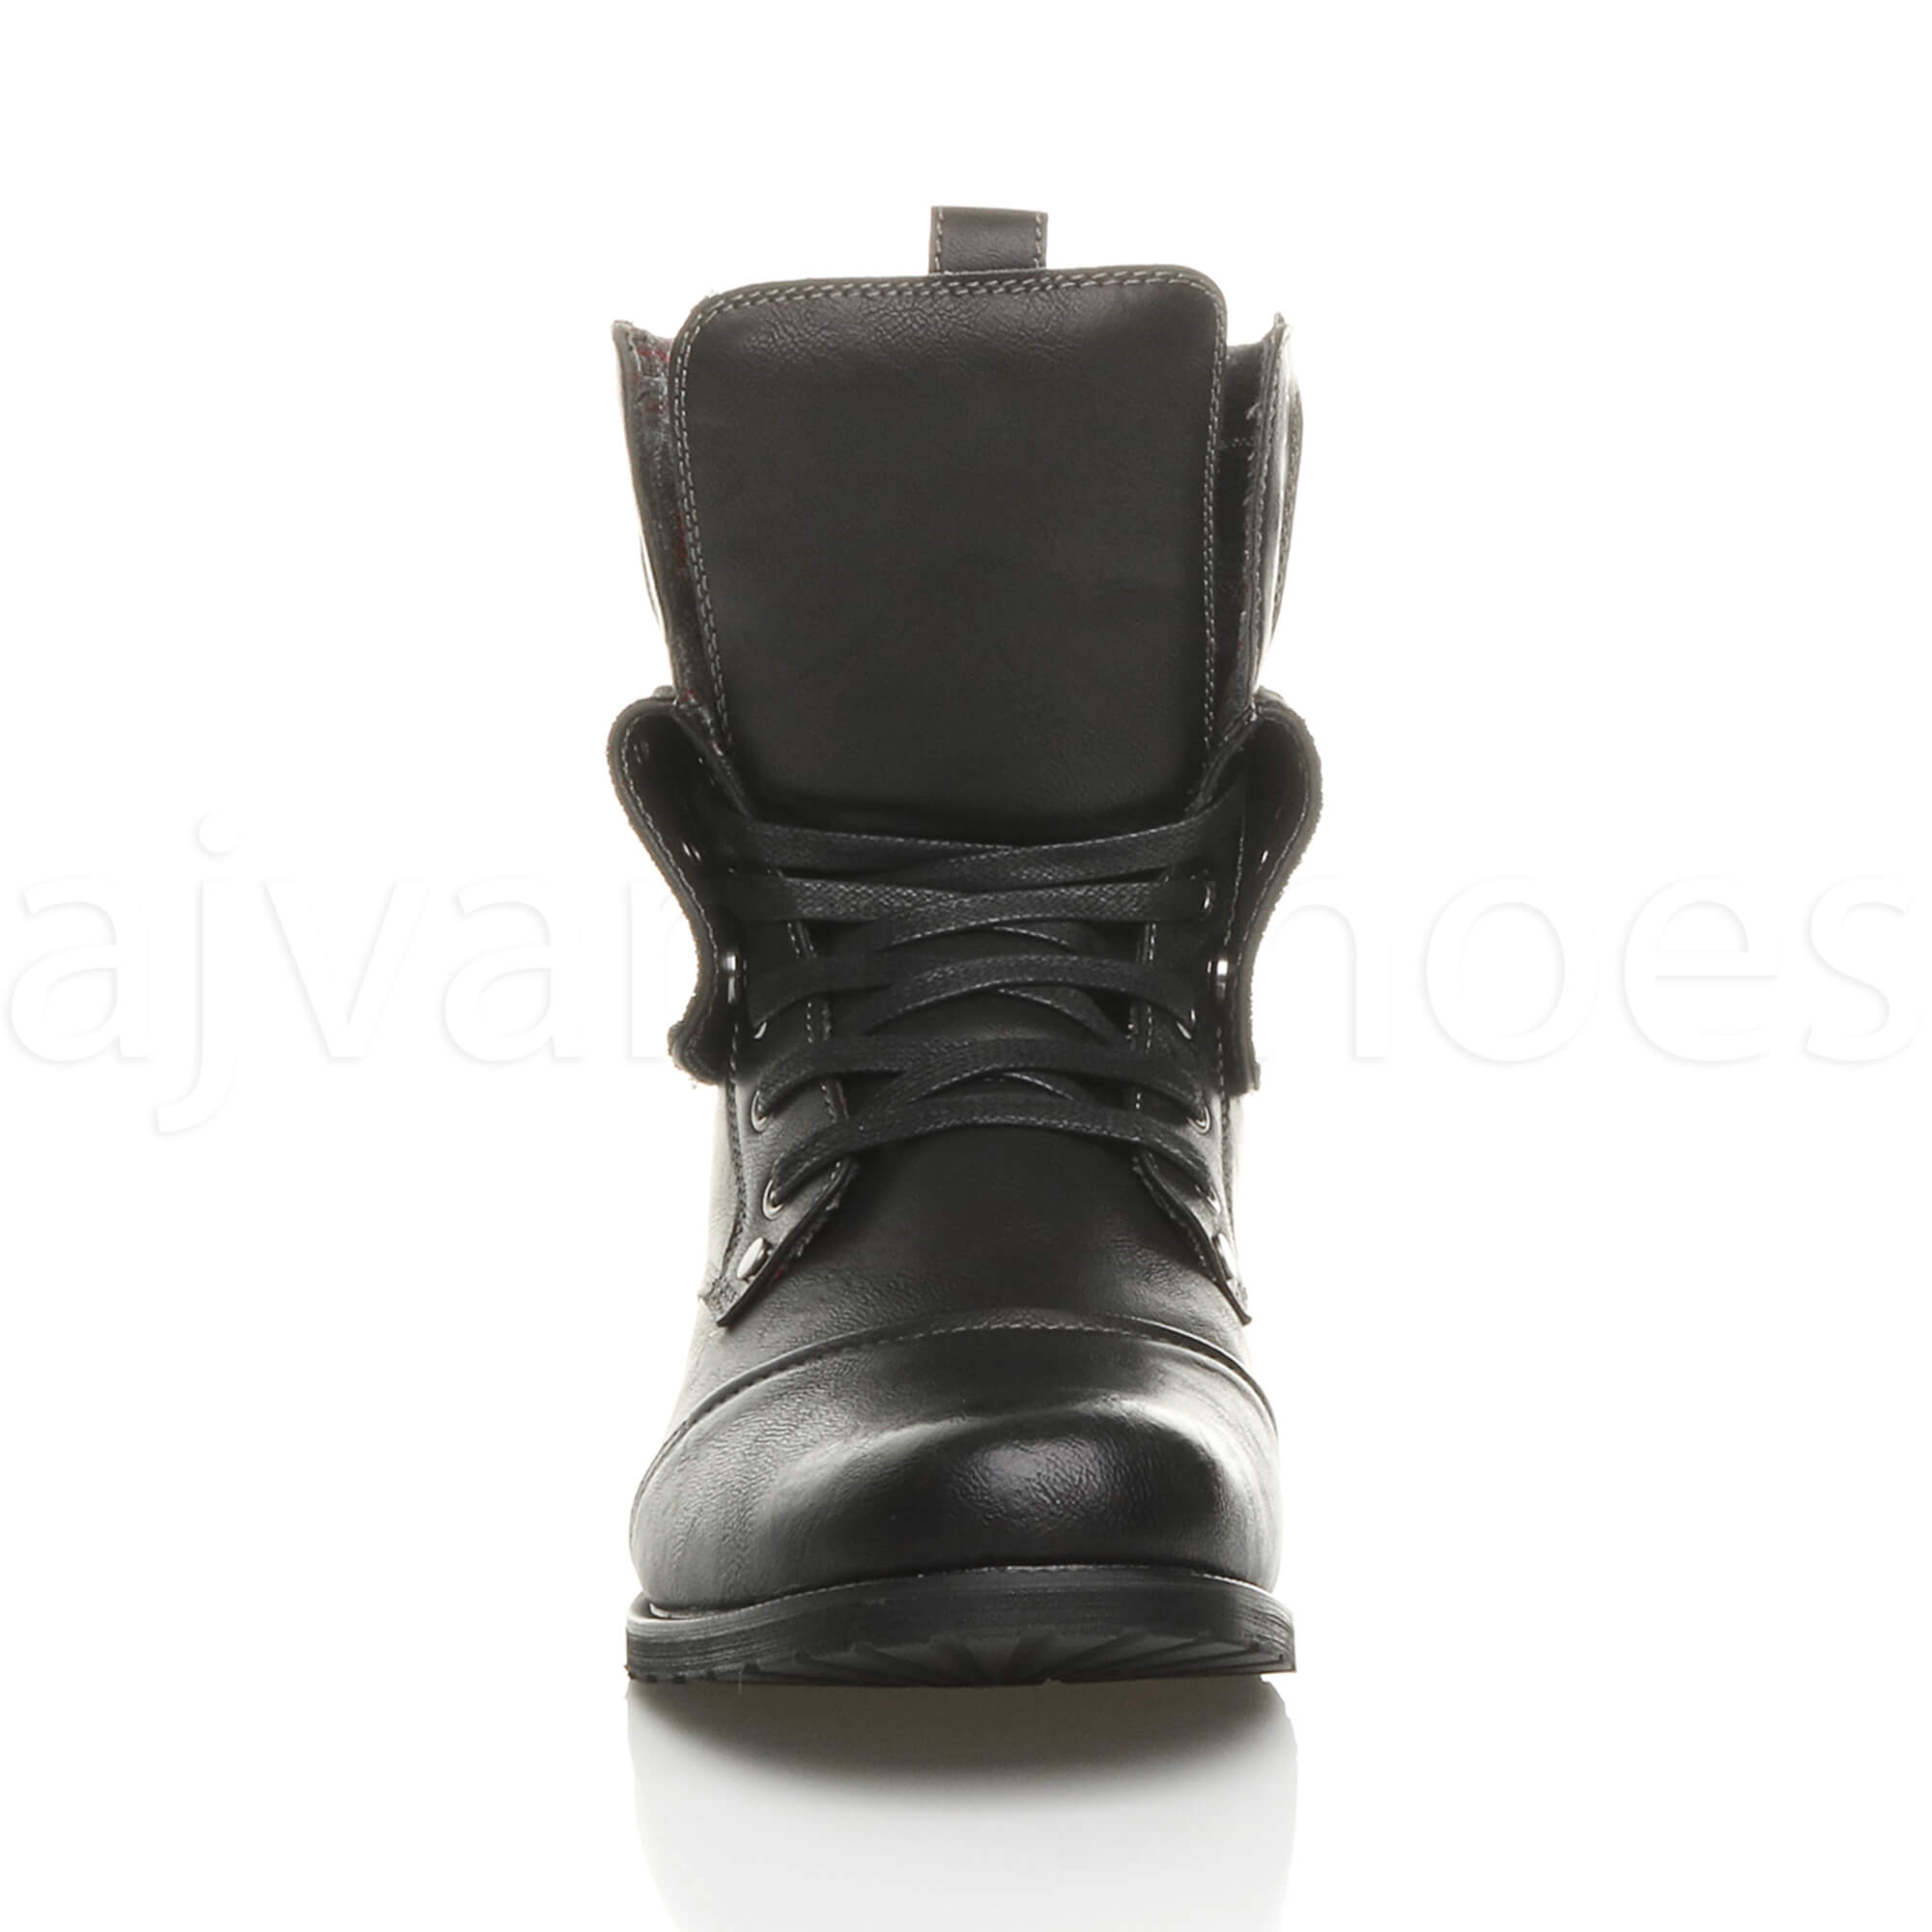 MENS-LACE-UP-LOW-HEEL-FLAT-FOLD-OVER-PADDED-CUFF-MILITARY-ANKLE-BOOTS-SIZE